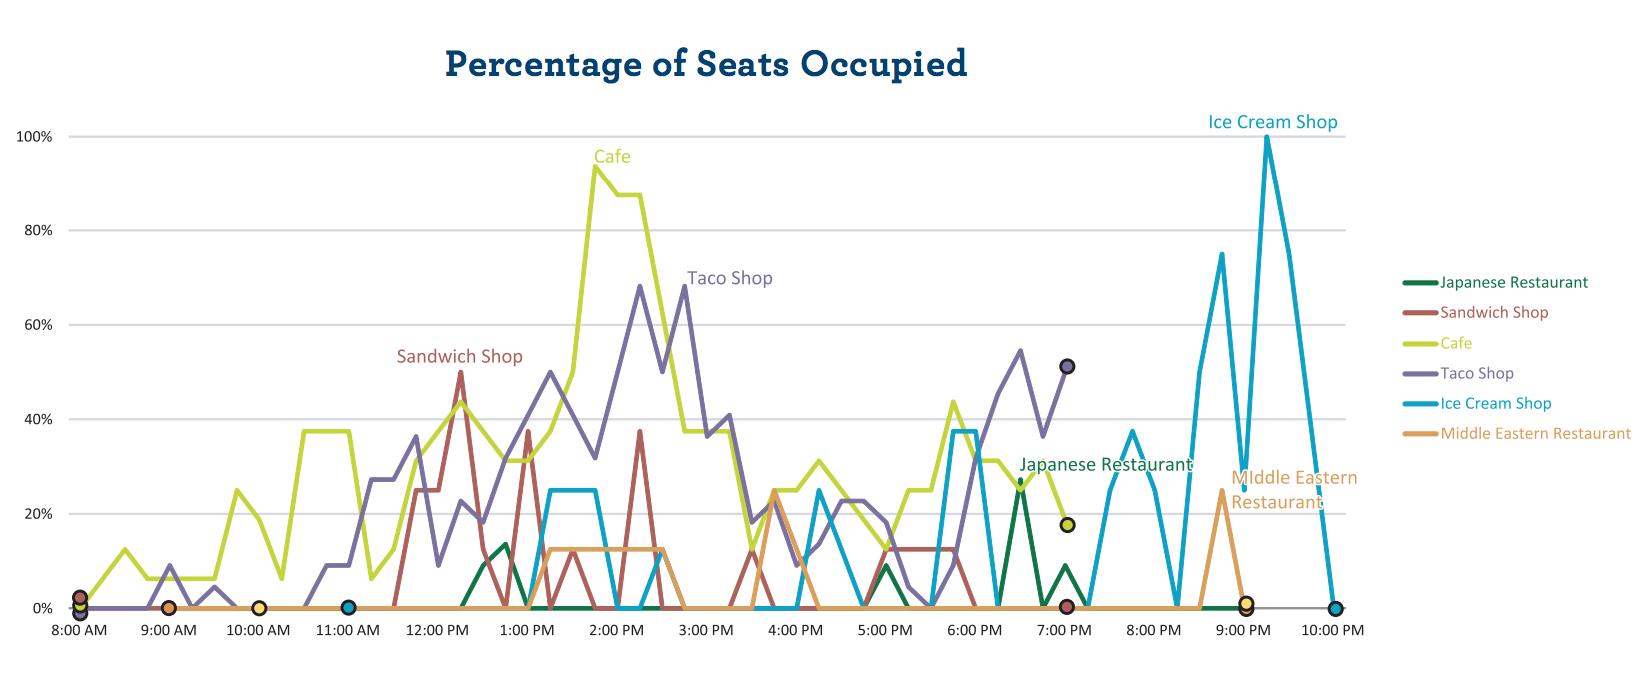 Percentage of Seats Occupied